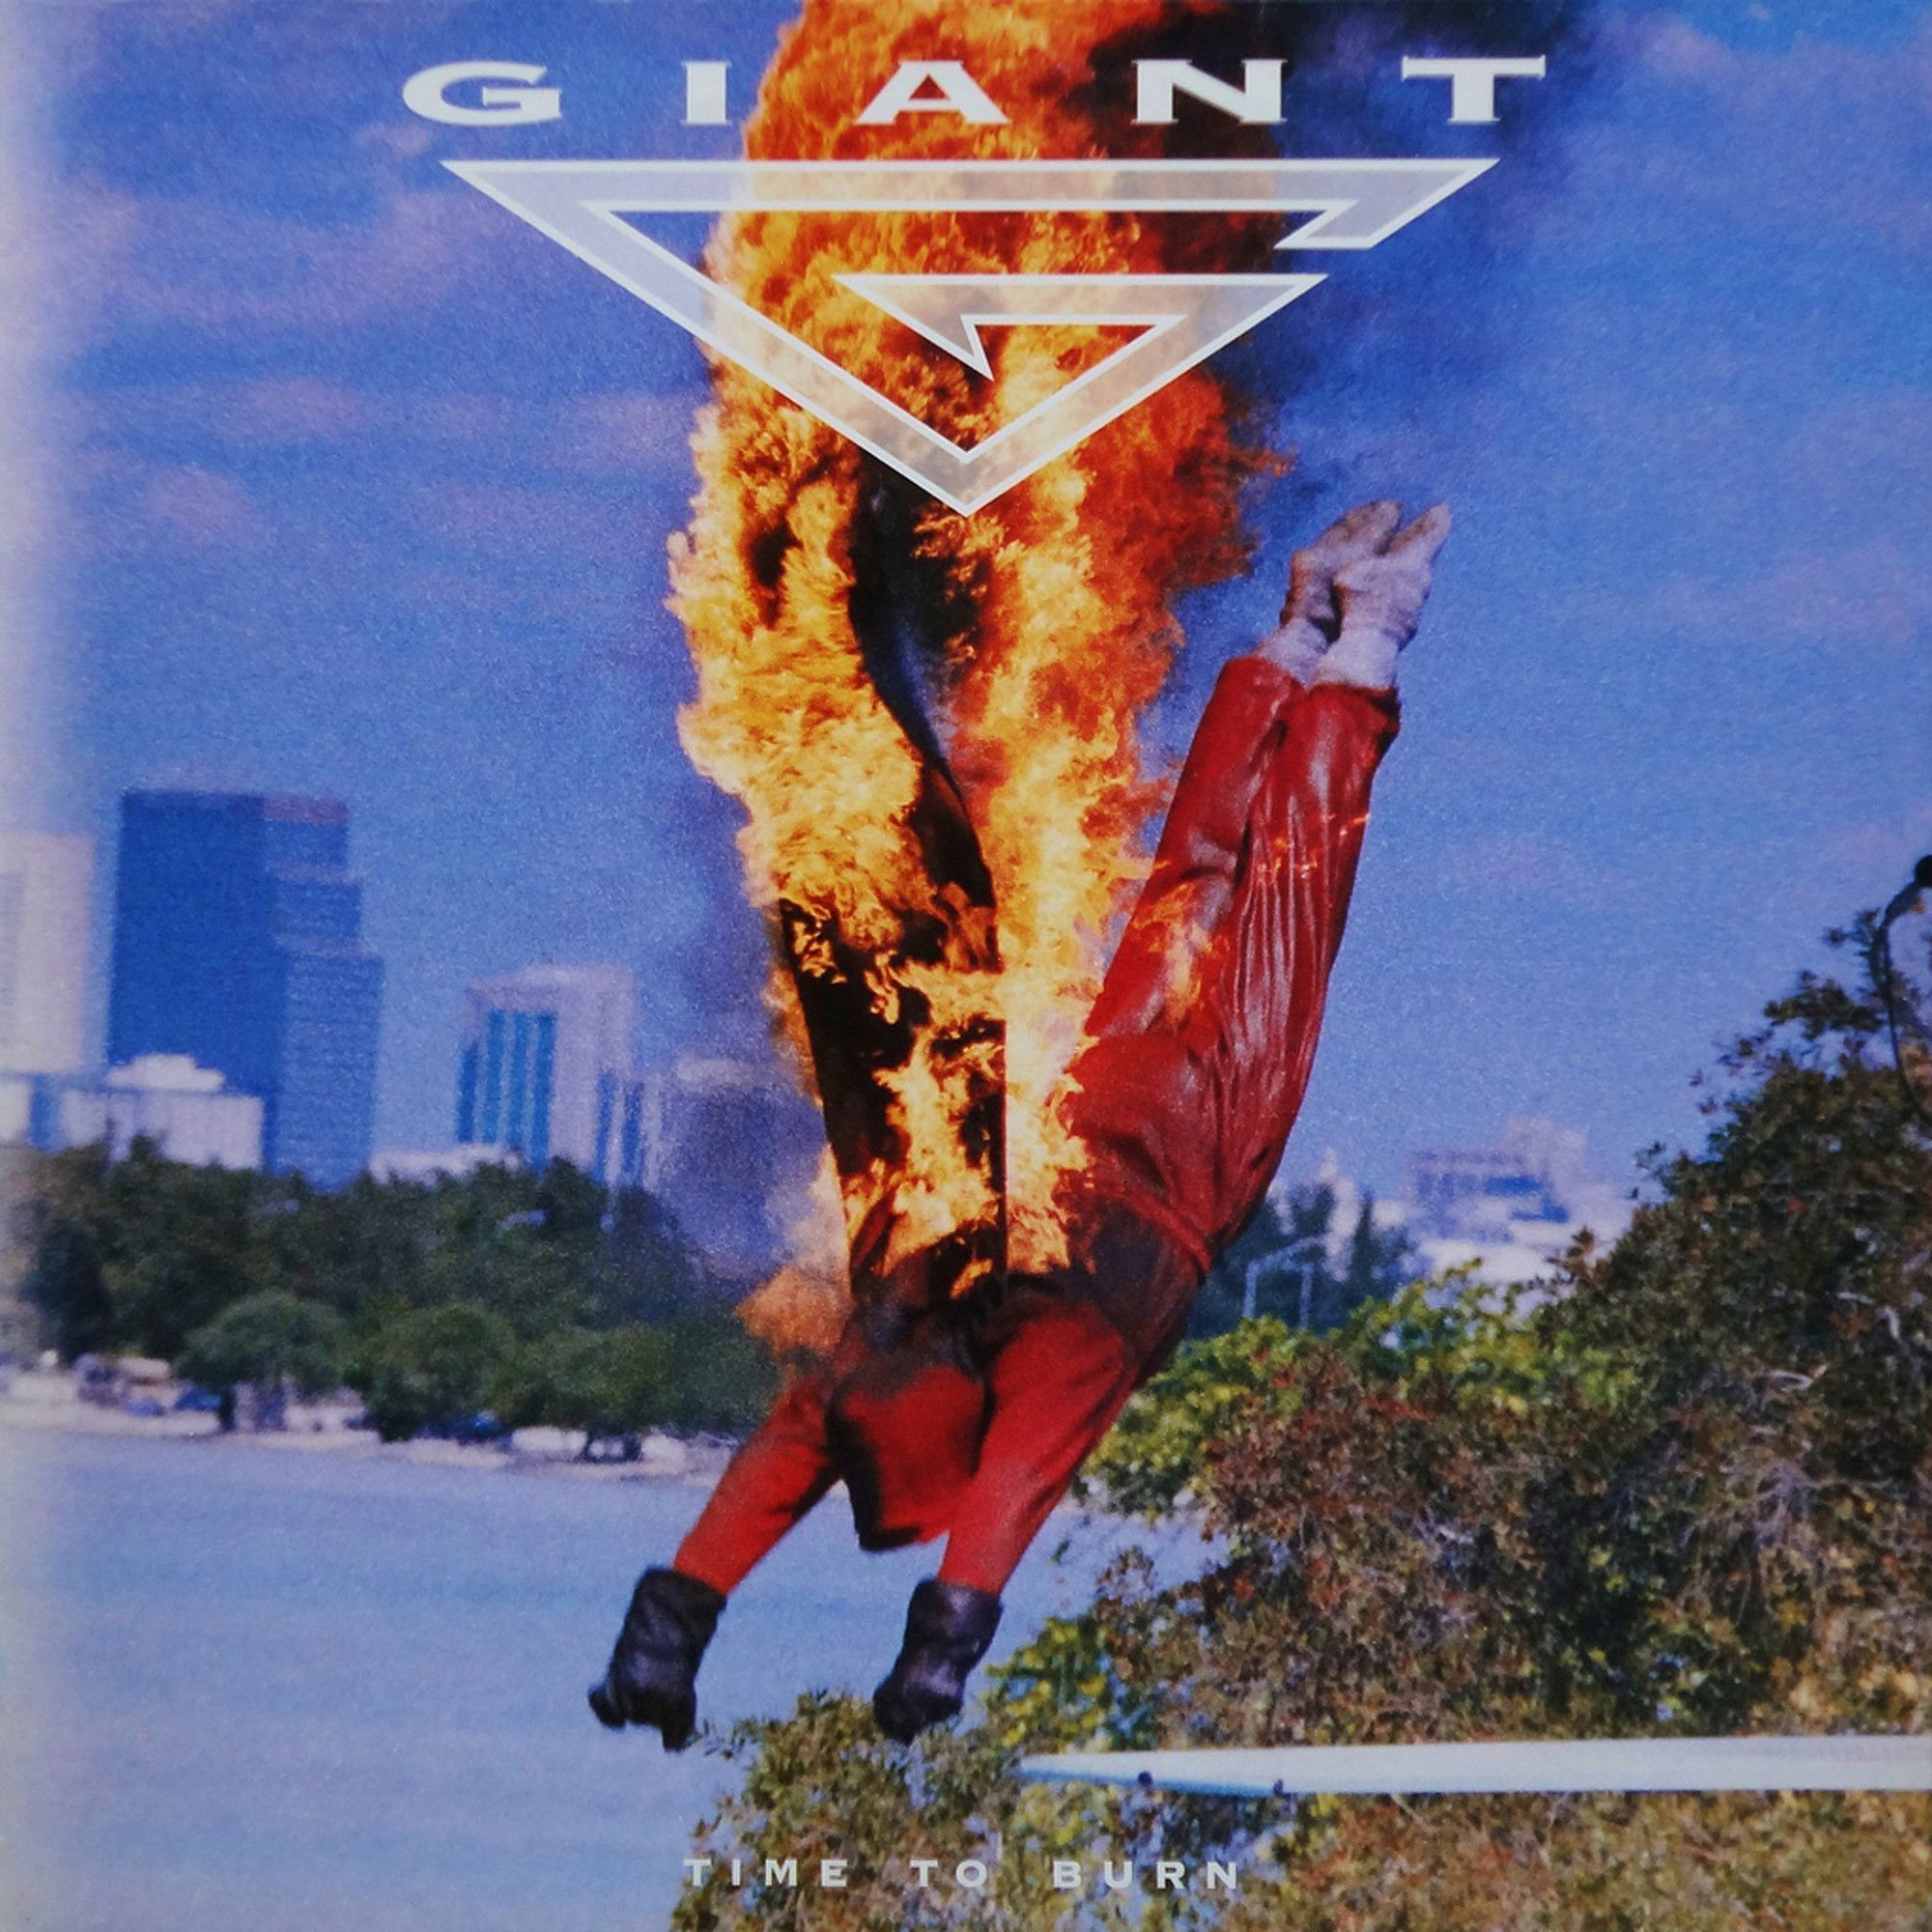 Giant - Time To Burn - CD